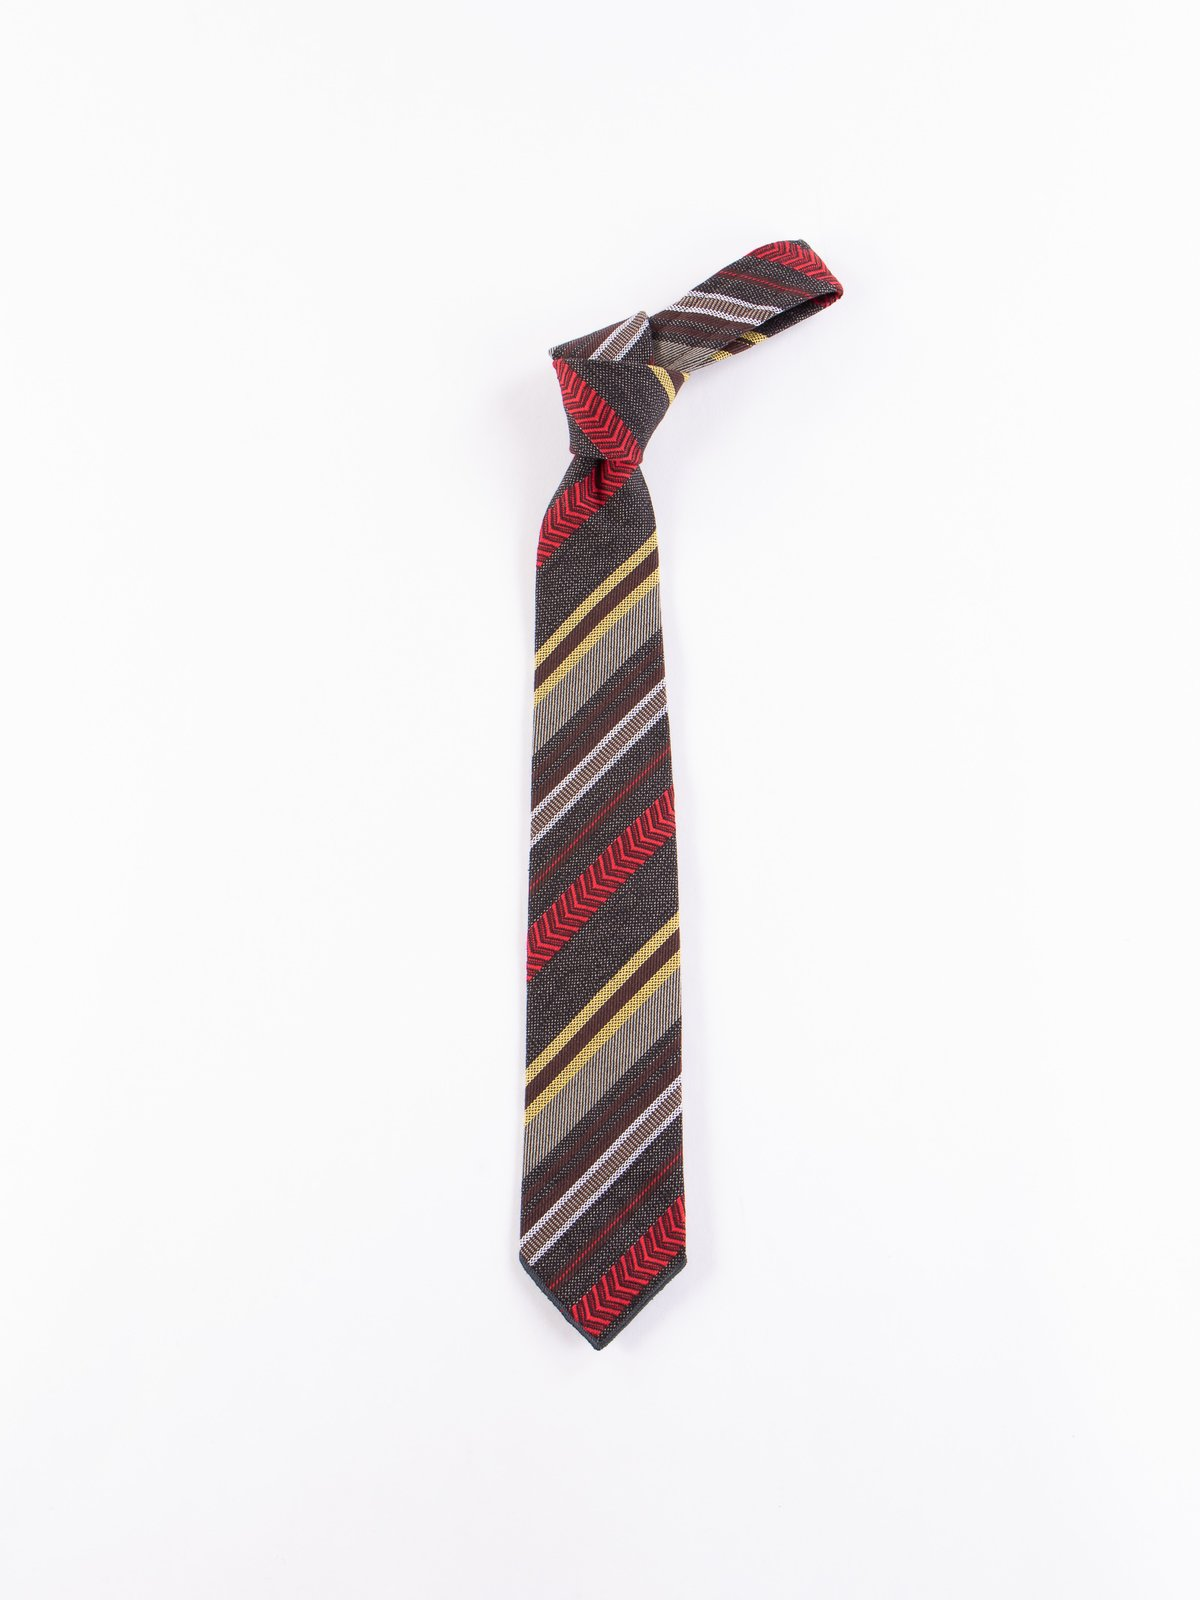 Grey/Yellow/Red Herringbone Dobby Stripe Neck Tie - Image 1